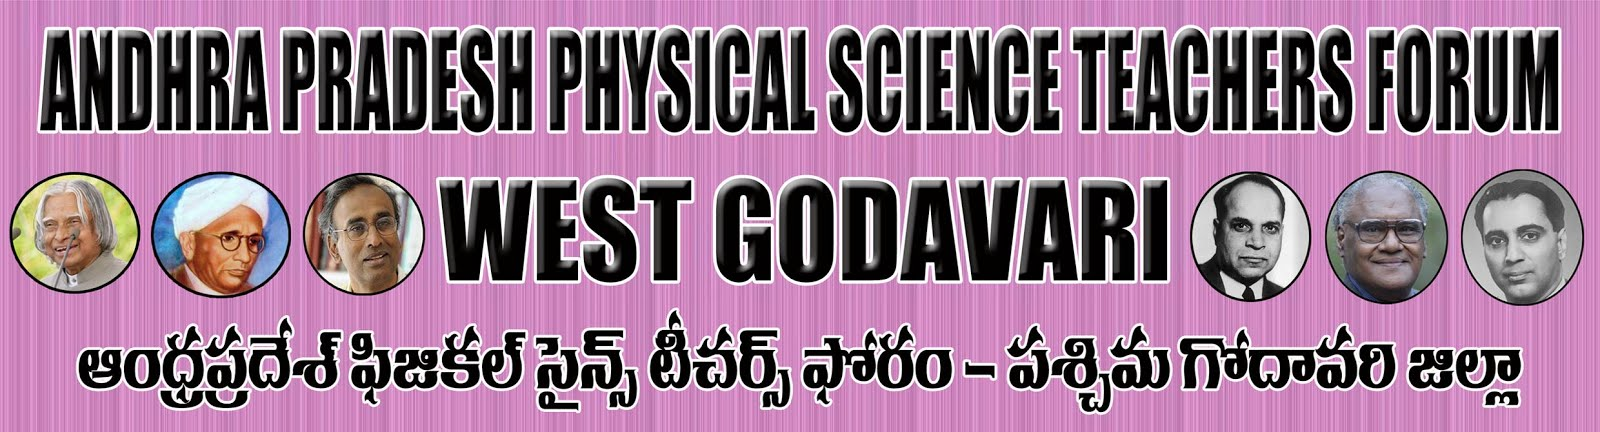 Andhra Pradesh Physical Science Teachers Forum - West Godavari